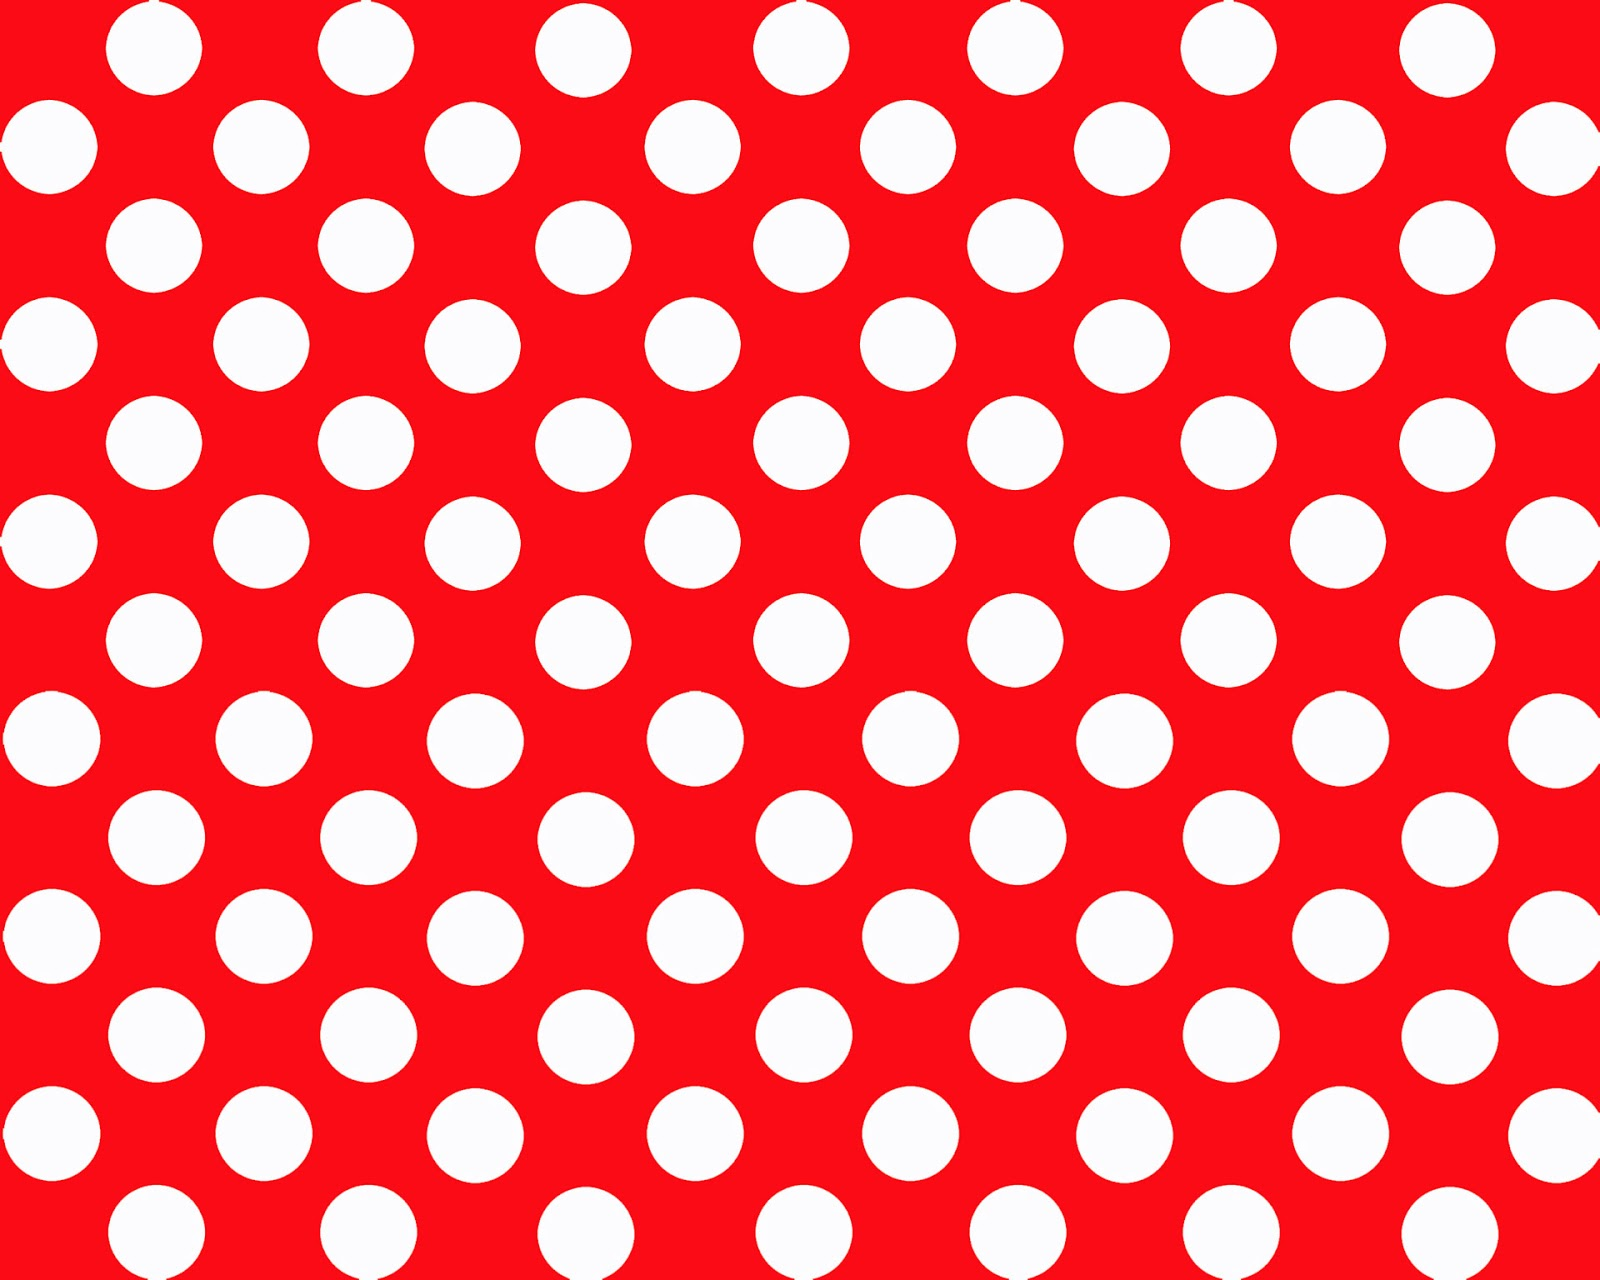 polka dots wallpaper - photo #33